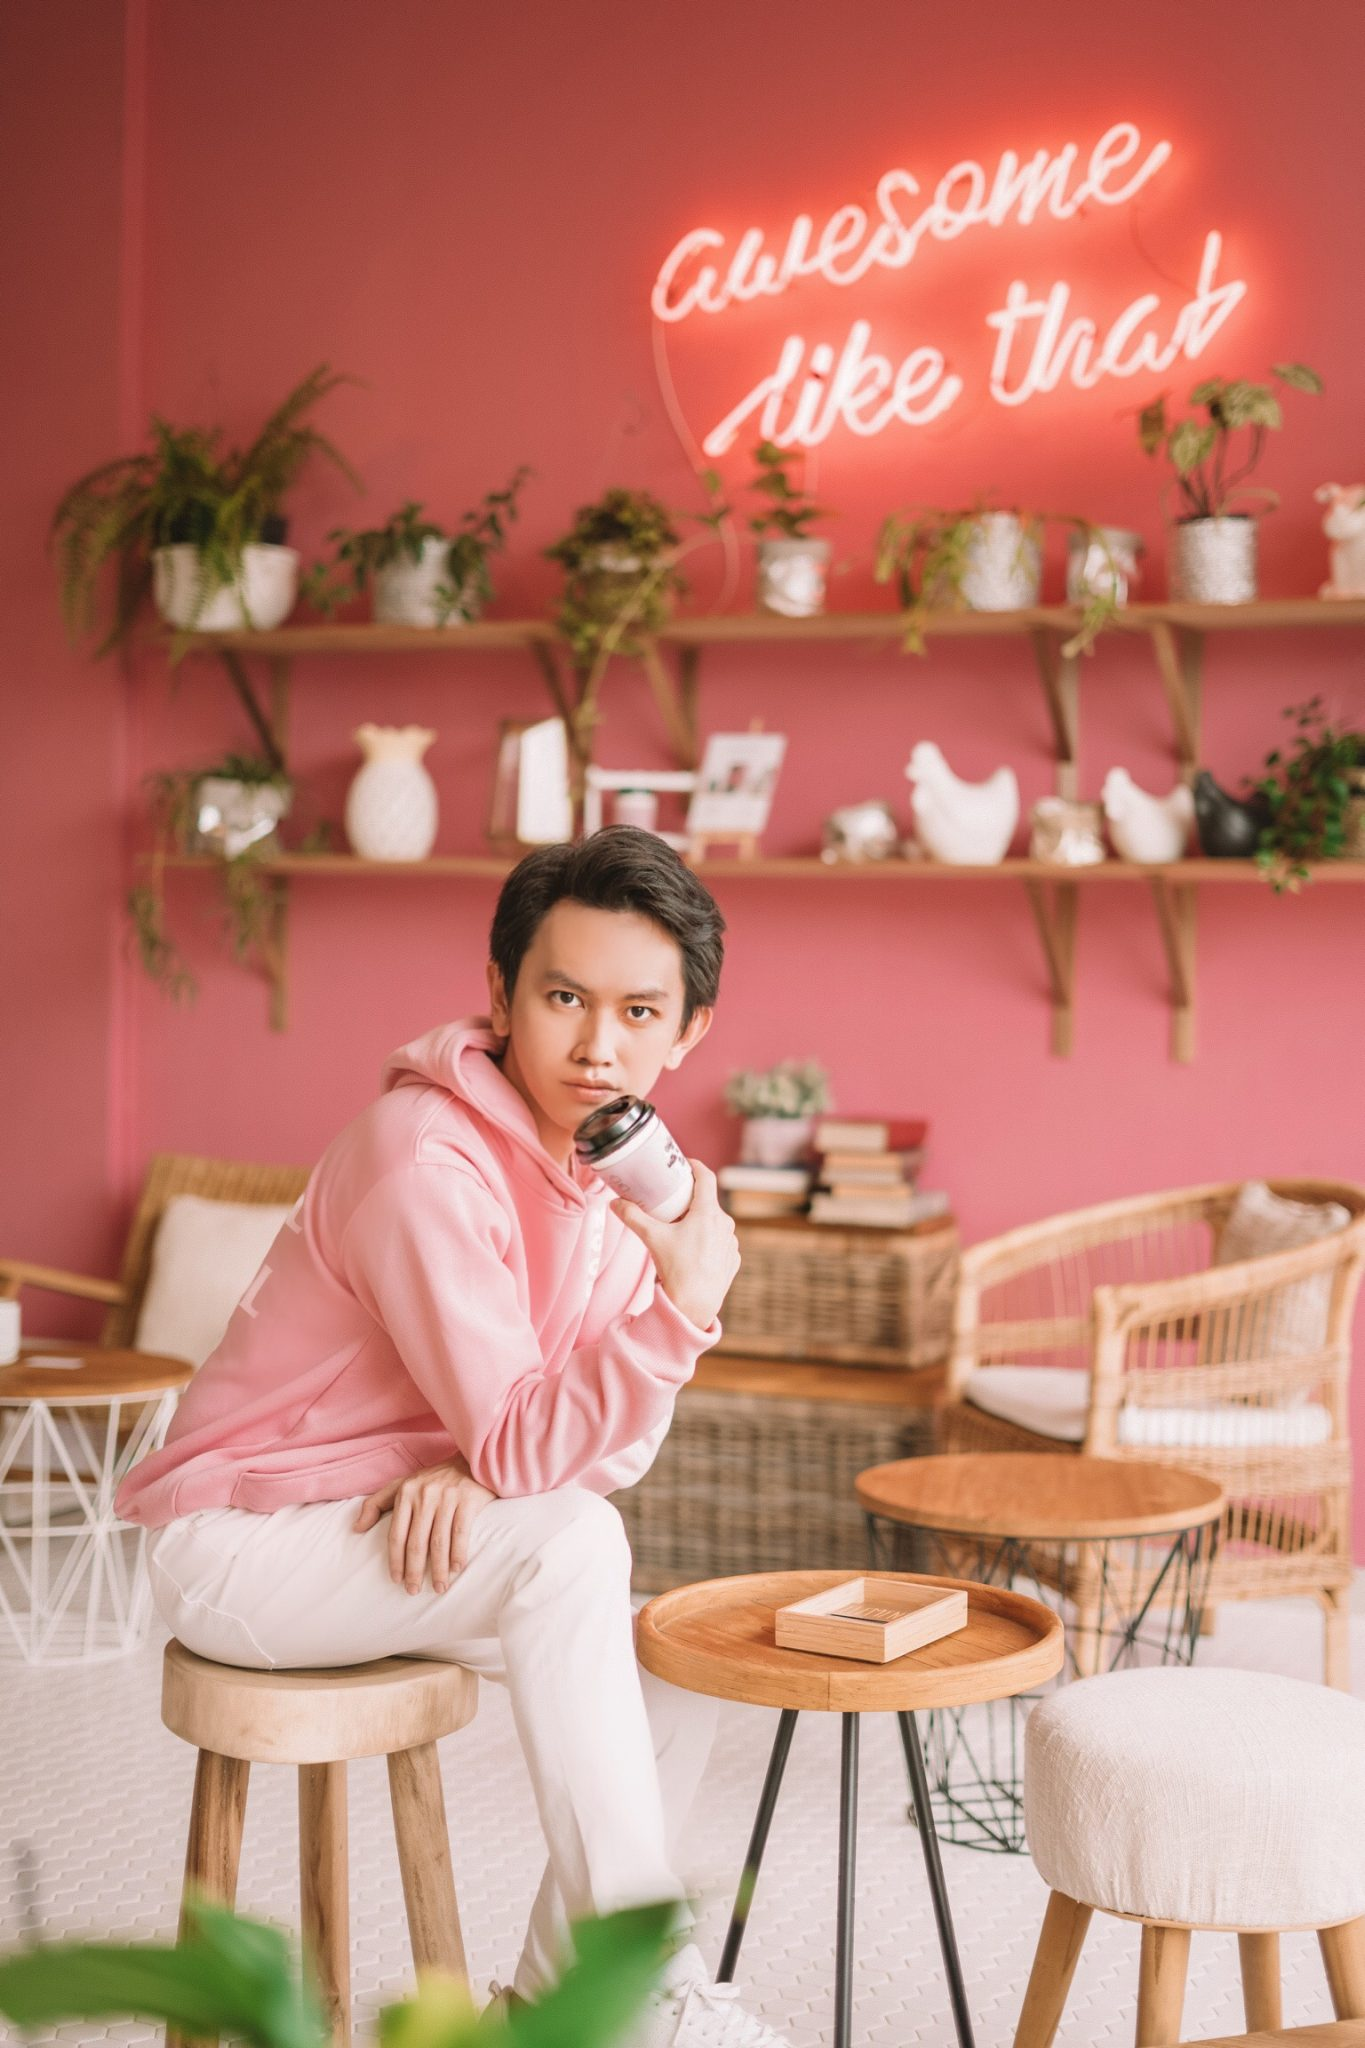 hendrawithjaya.com hendra wijaya indonesian fashion blogger pria indonesia cowok instagram selebgram digital social media influencer indonesia buzzer selebgram pink style why not anti social social club hoodie adidas indonesia sneakers uniqlo indonesia pants district 7 coffee shop jakarta endorse endorsement indonesia selebgram blogger fashion paid promote